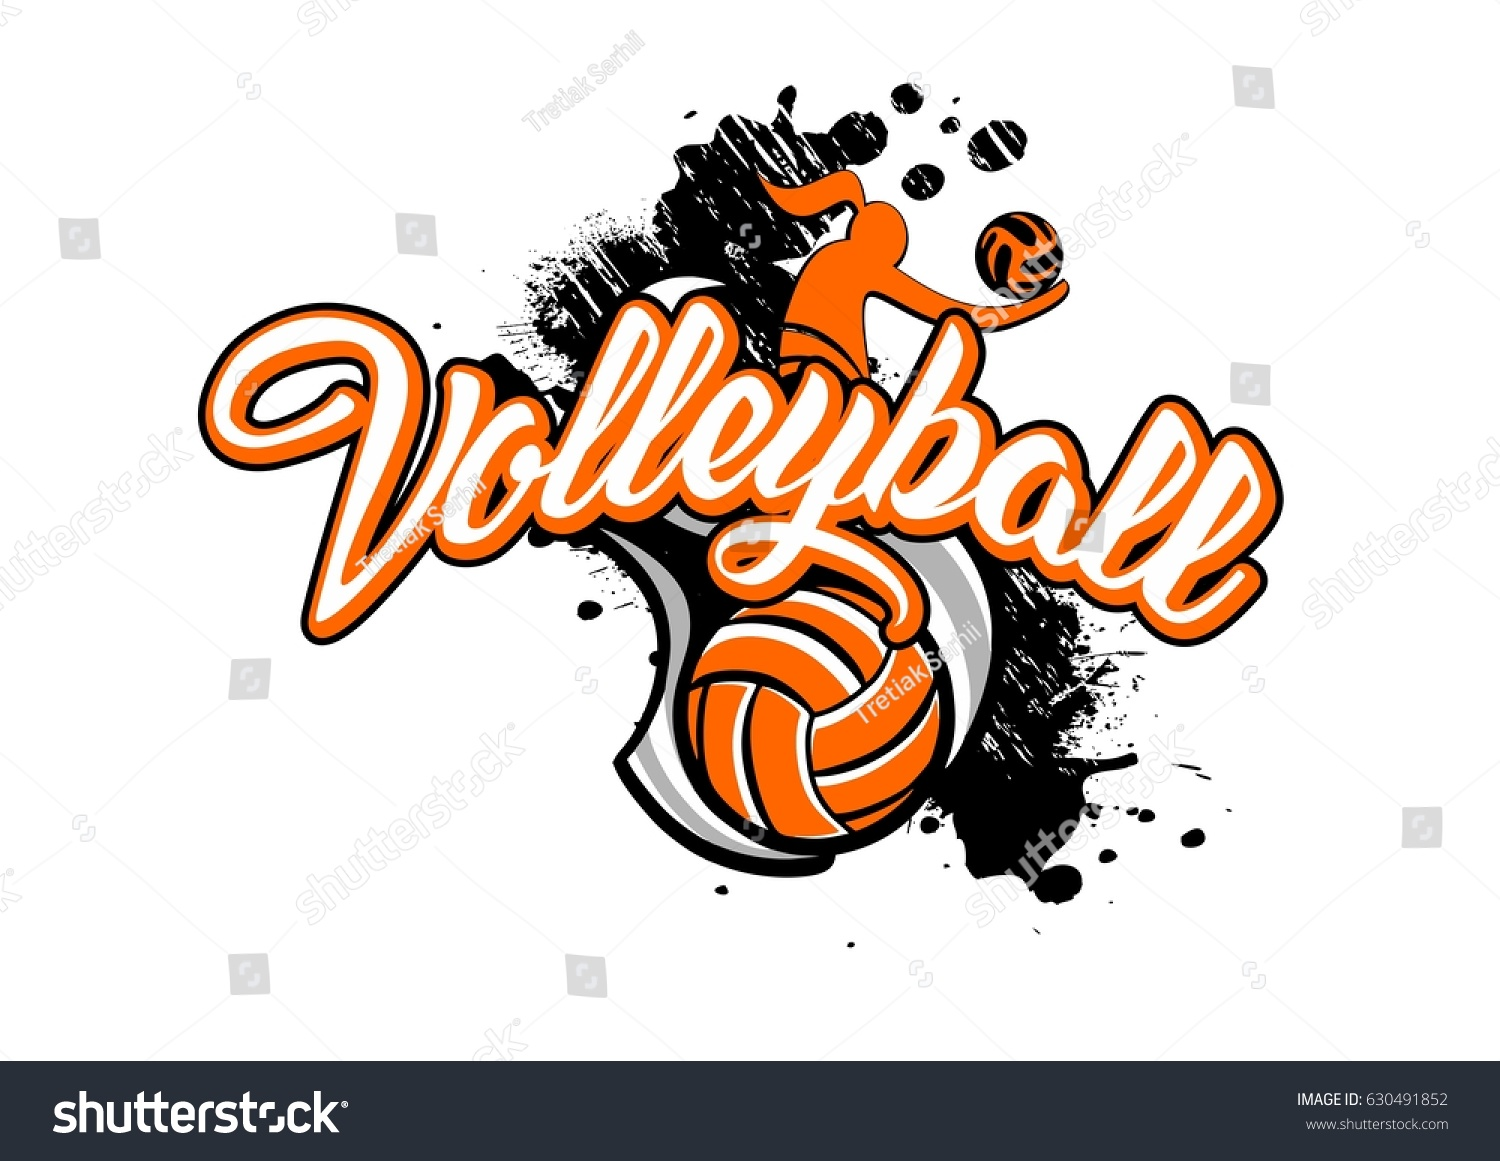 Abstract Grungy Background Volleyball Arrowhead Stock: Volleyball Backgrounds Sports Stock Illustration 630491852